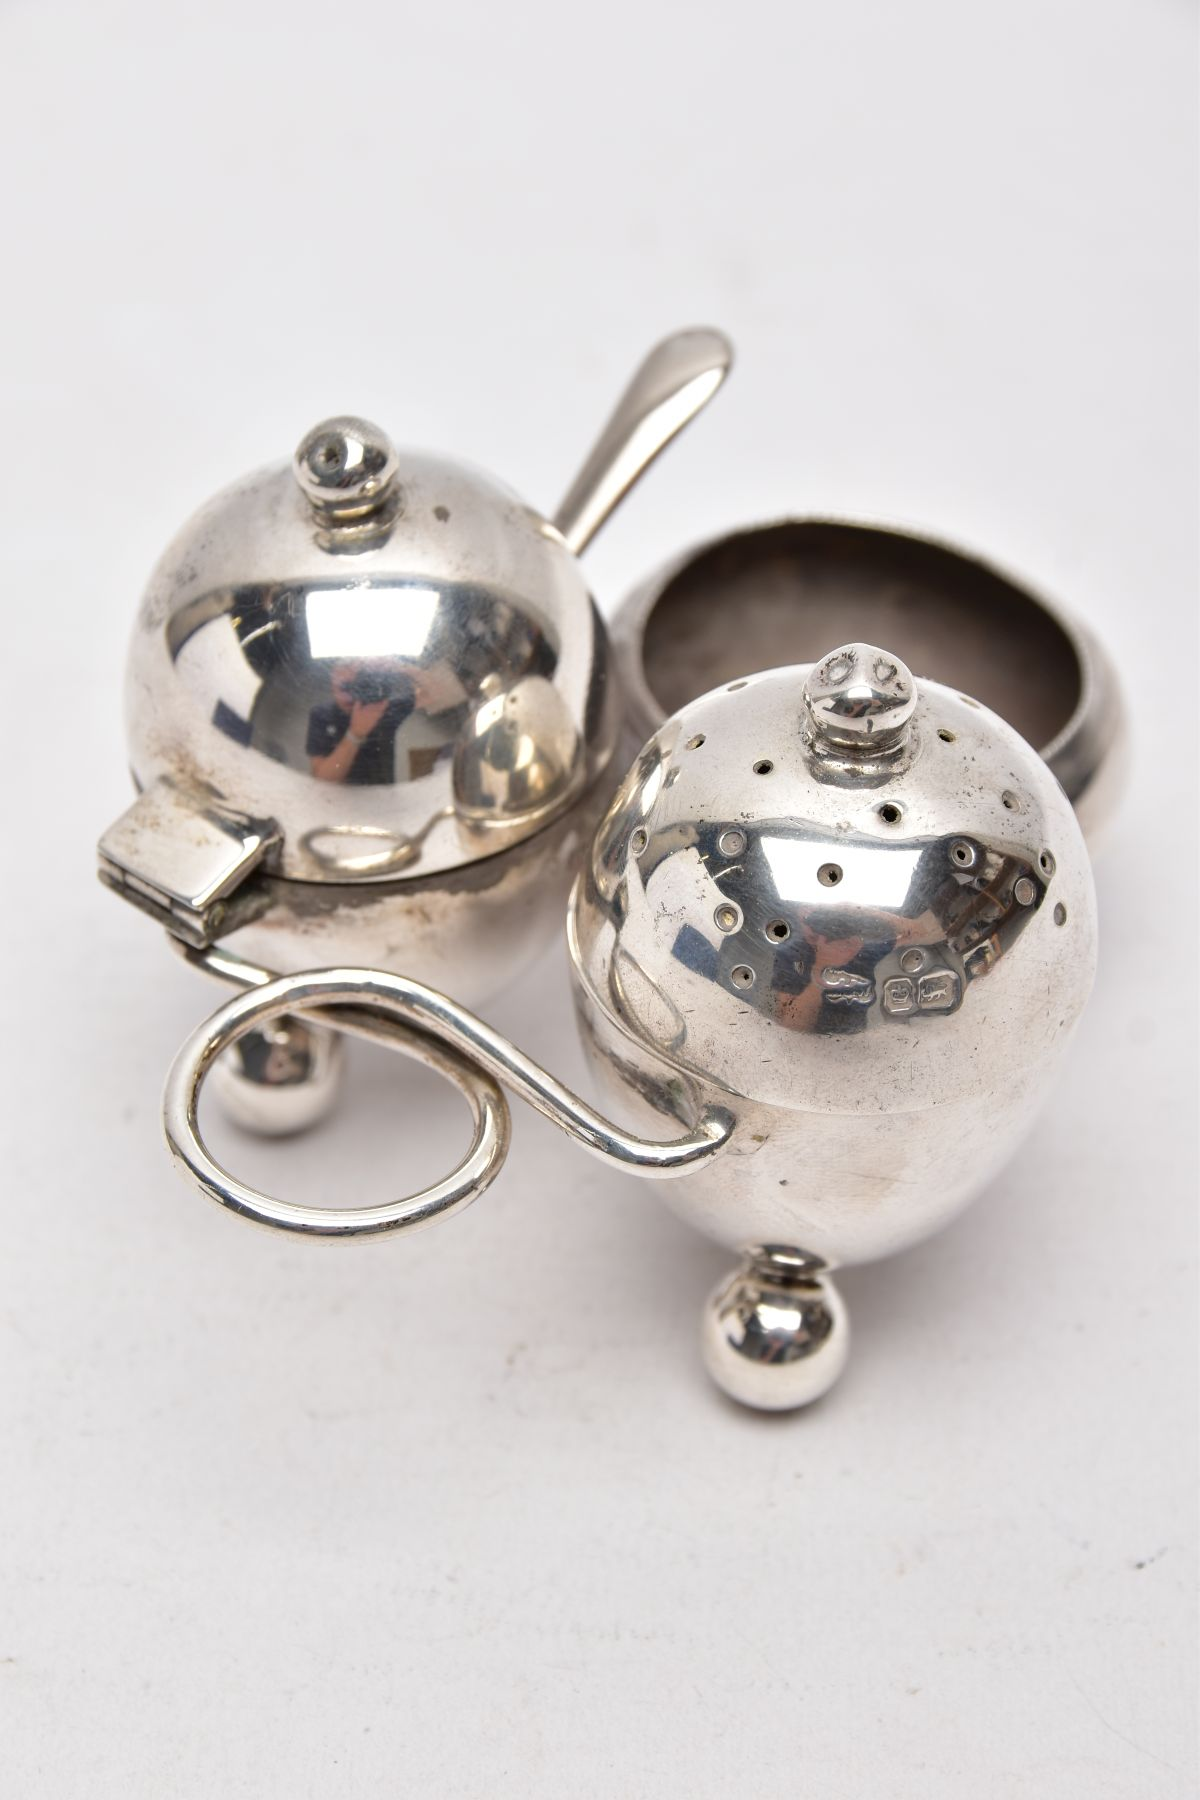 AN EARLY 20TH CENTURY 'MAPPIN & WEBB' CRUET SET, a three piece set with integral strand,